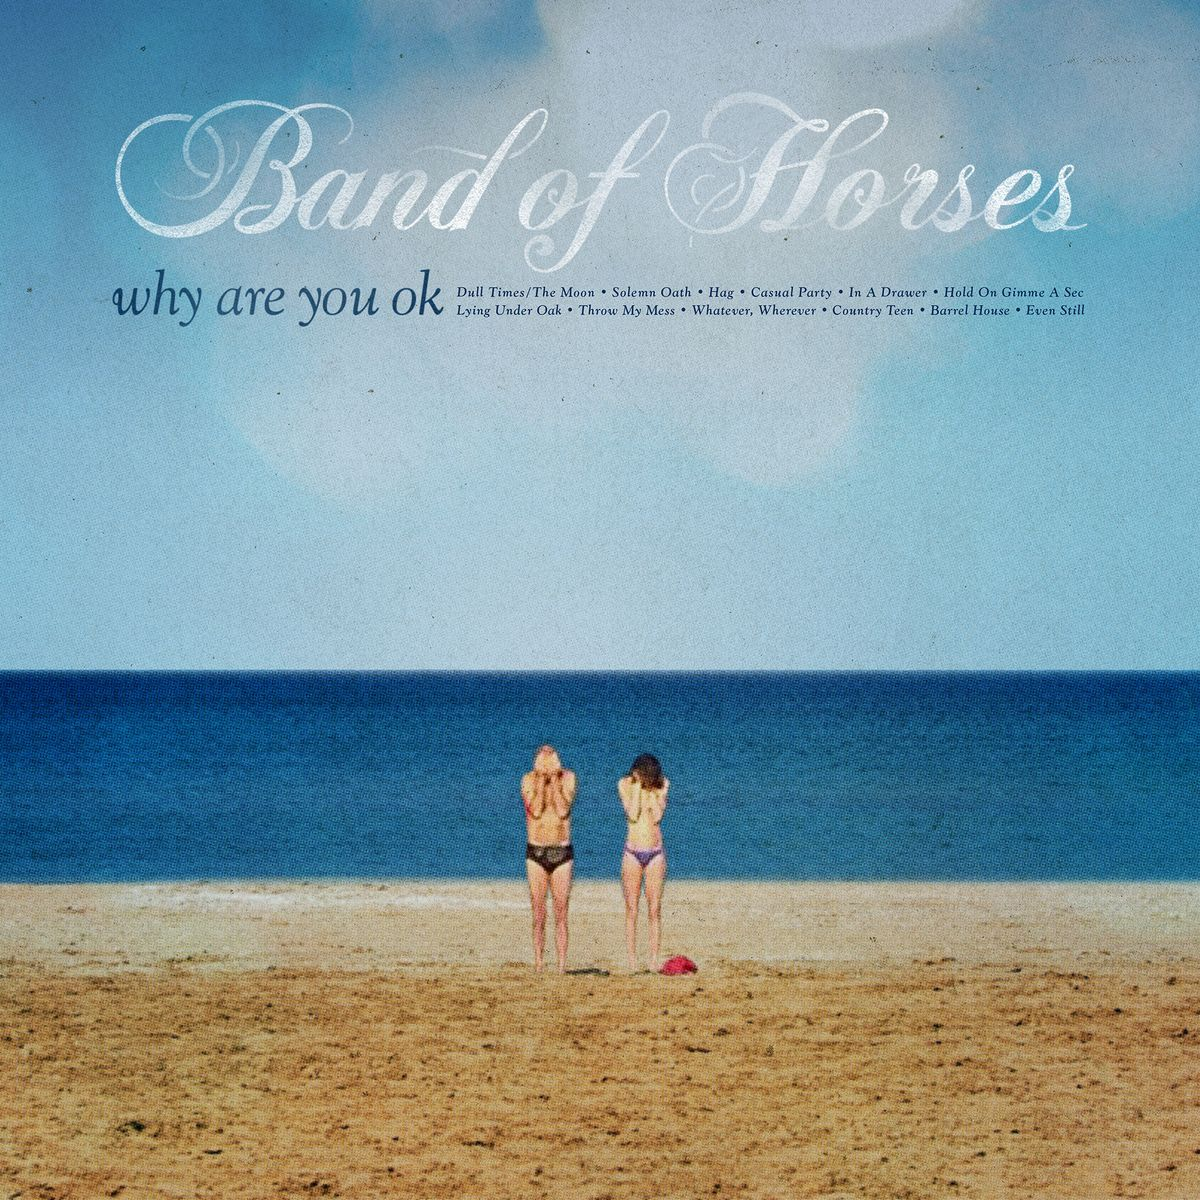 Why Are You OK Band of Horses